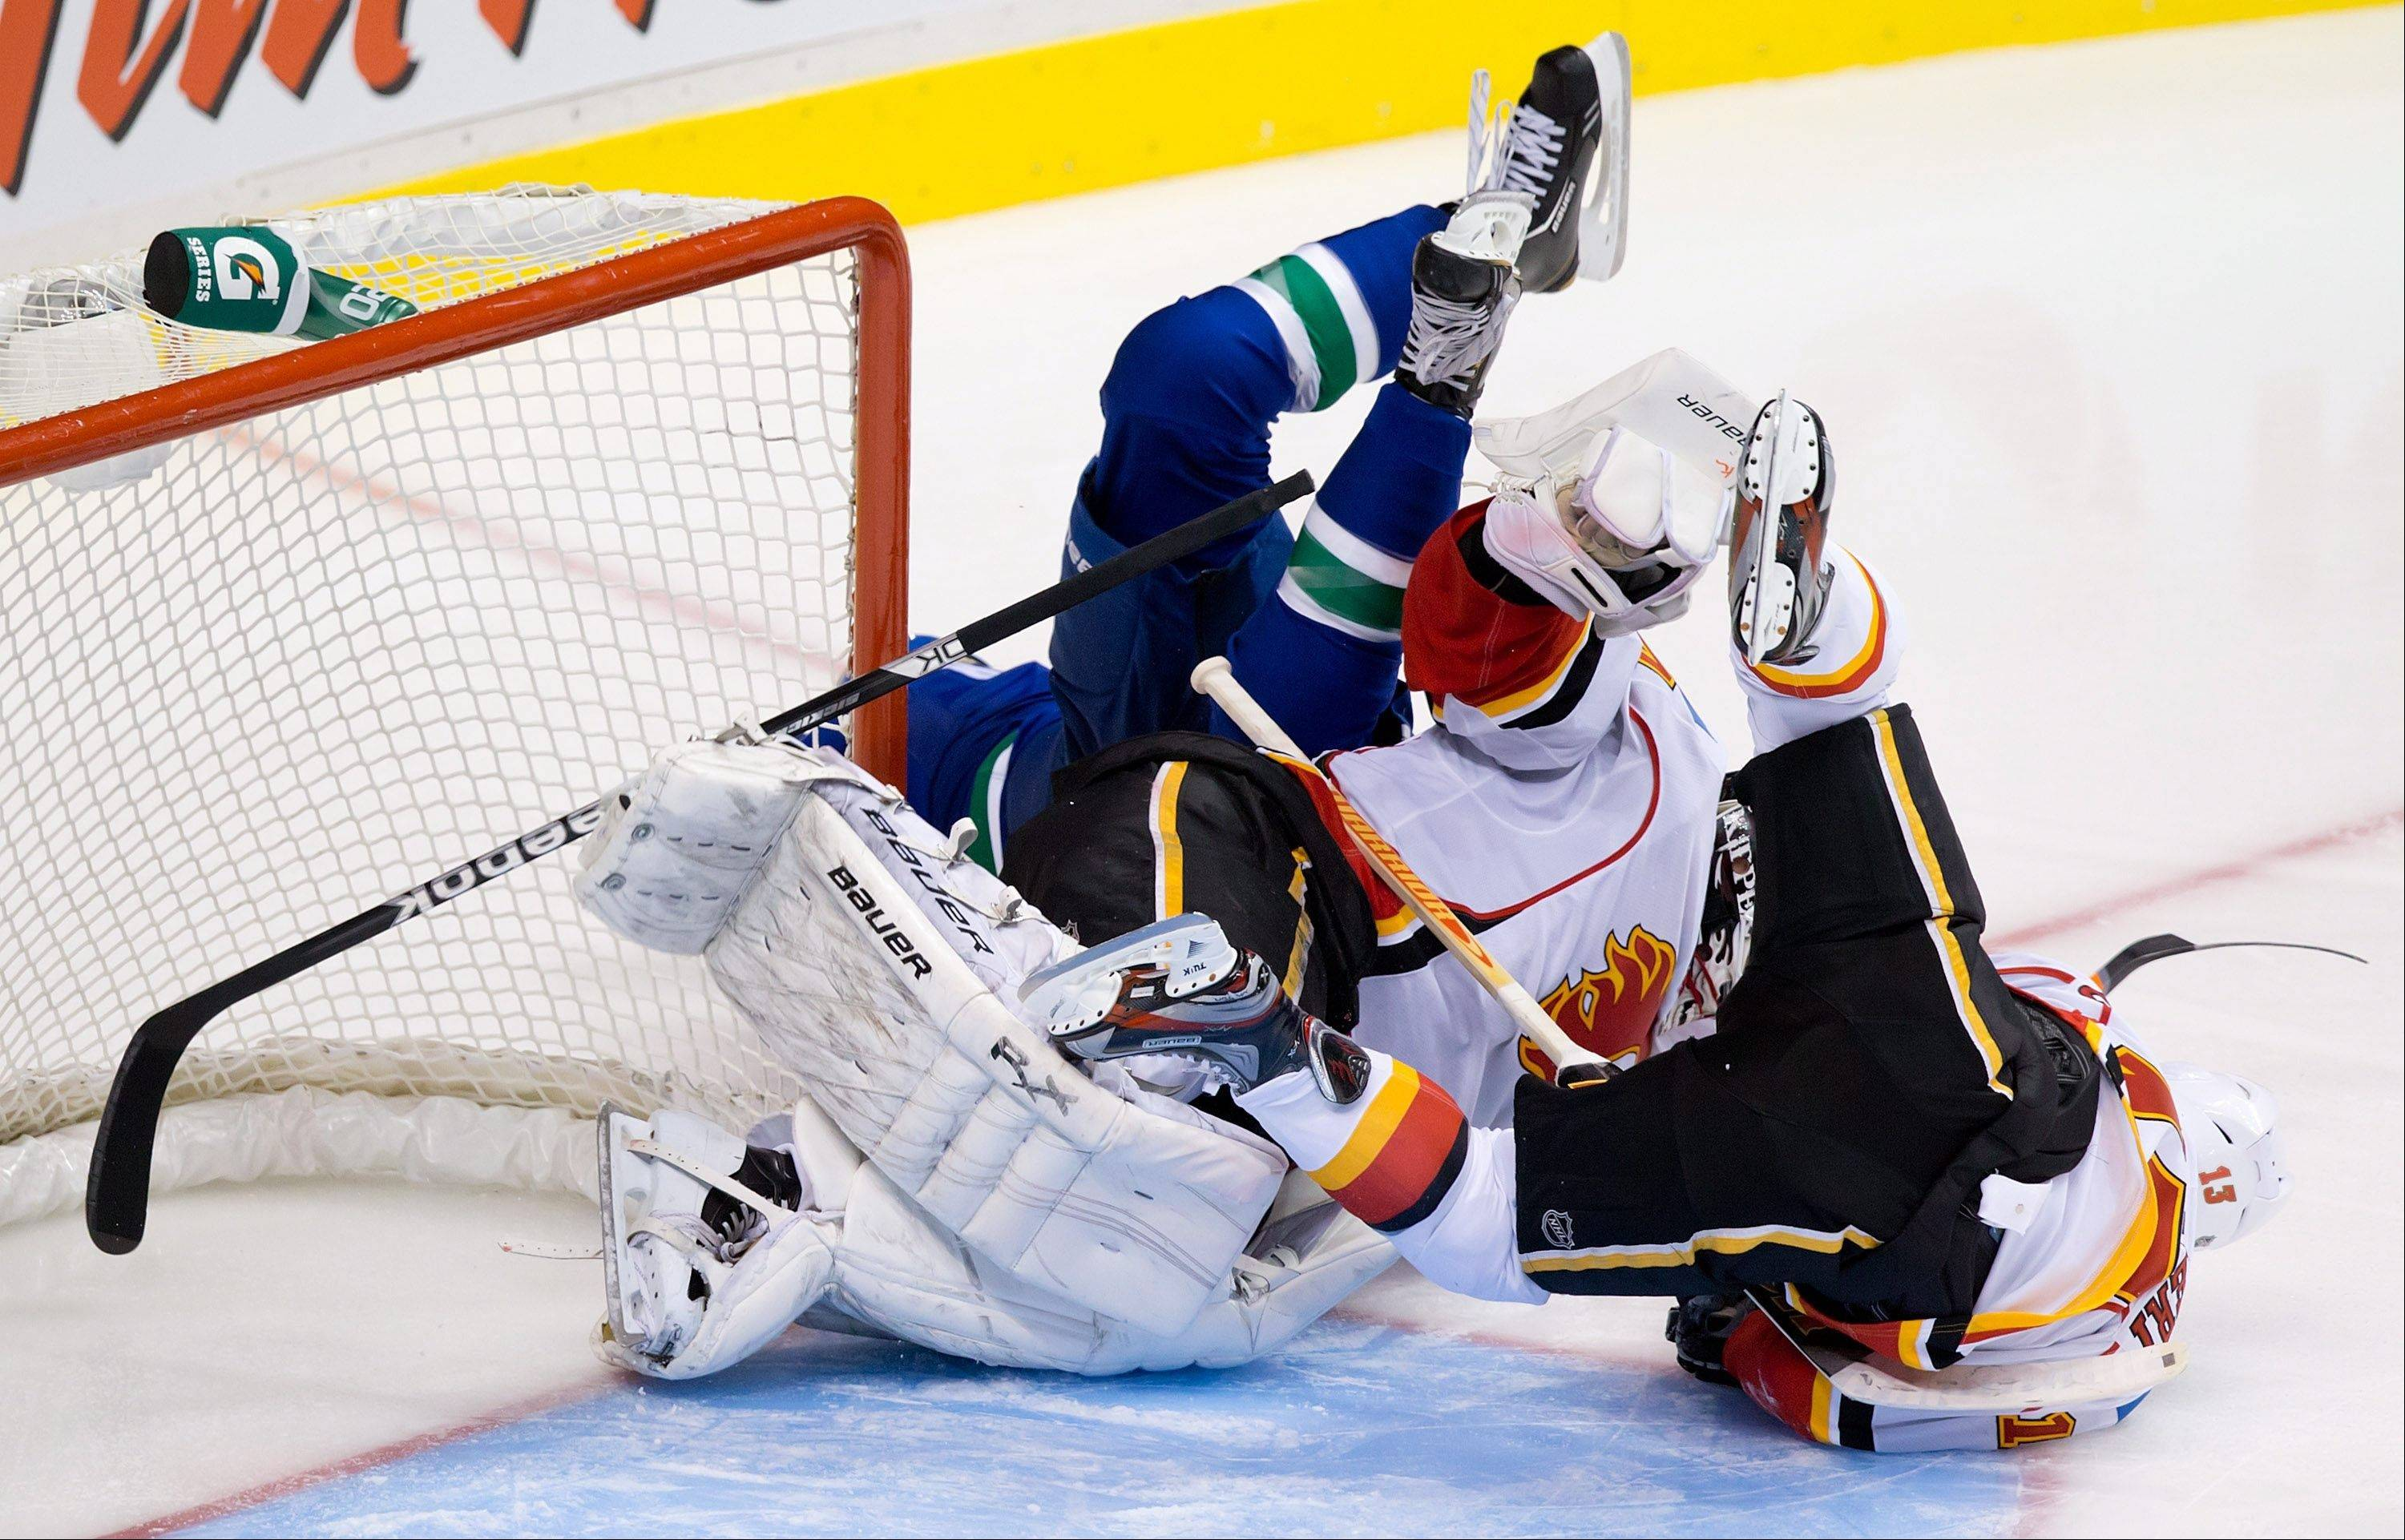 Vancouver Canucks' Zack Kassian, left, crashes into Calgary Flames goalie Miikka Kiprusoff, of Finland, and Mike Cammalleri, right, during the third period of an NHL hockey game in Vancouver, British Columbia.